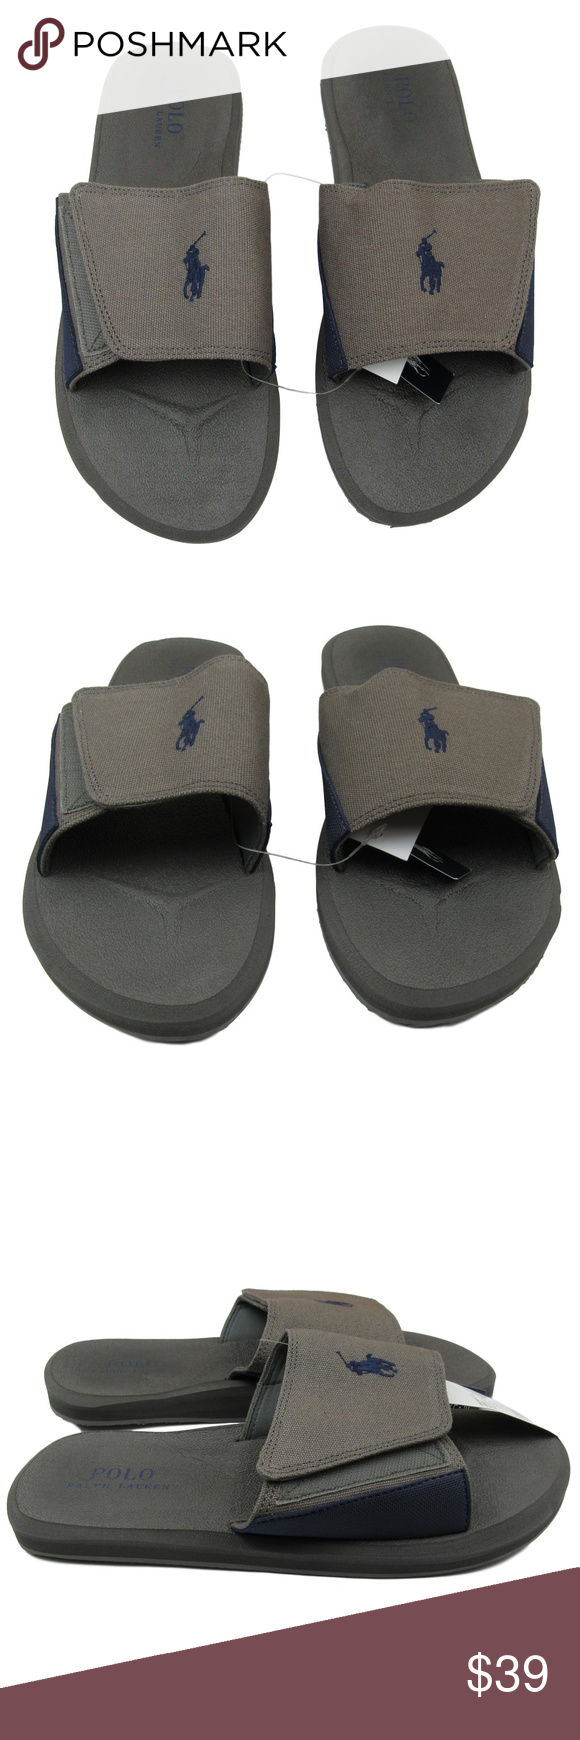 f95b746f4ed5 Polo Ralph Lauren Slides Sandal Size 10 Mens Grey Polo Ralph Lauren Slides  Sandals Canvas Slip On Men s Size 10 Gray   Blue Logo Colorway Brand New  Without ...